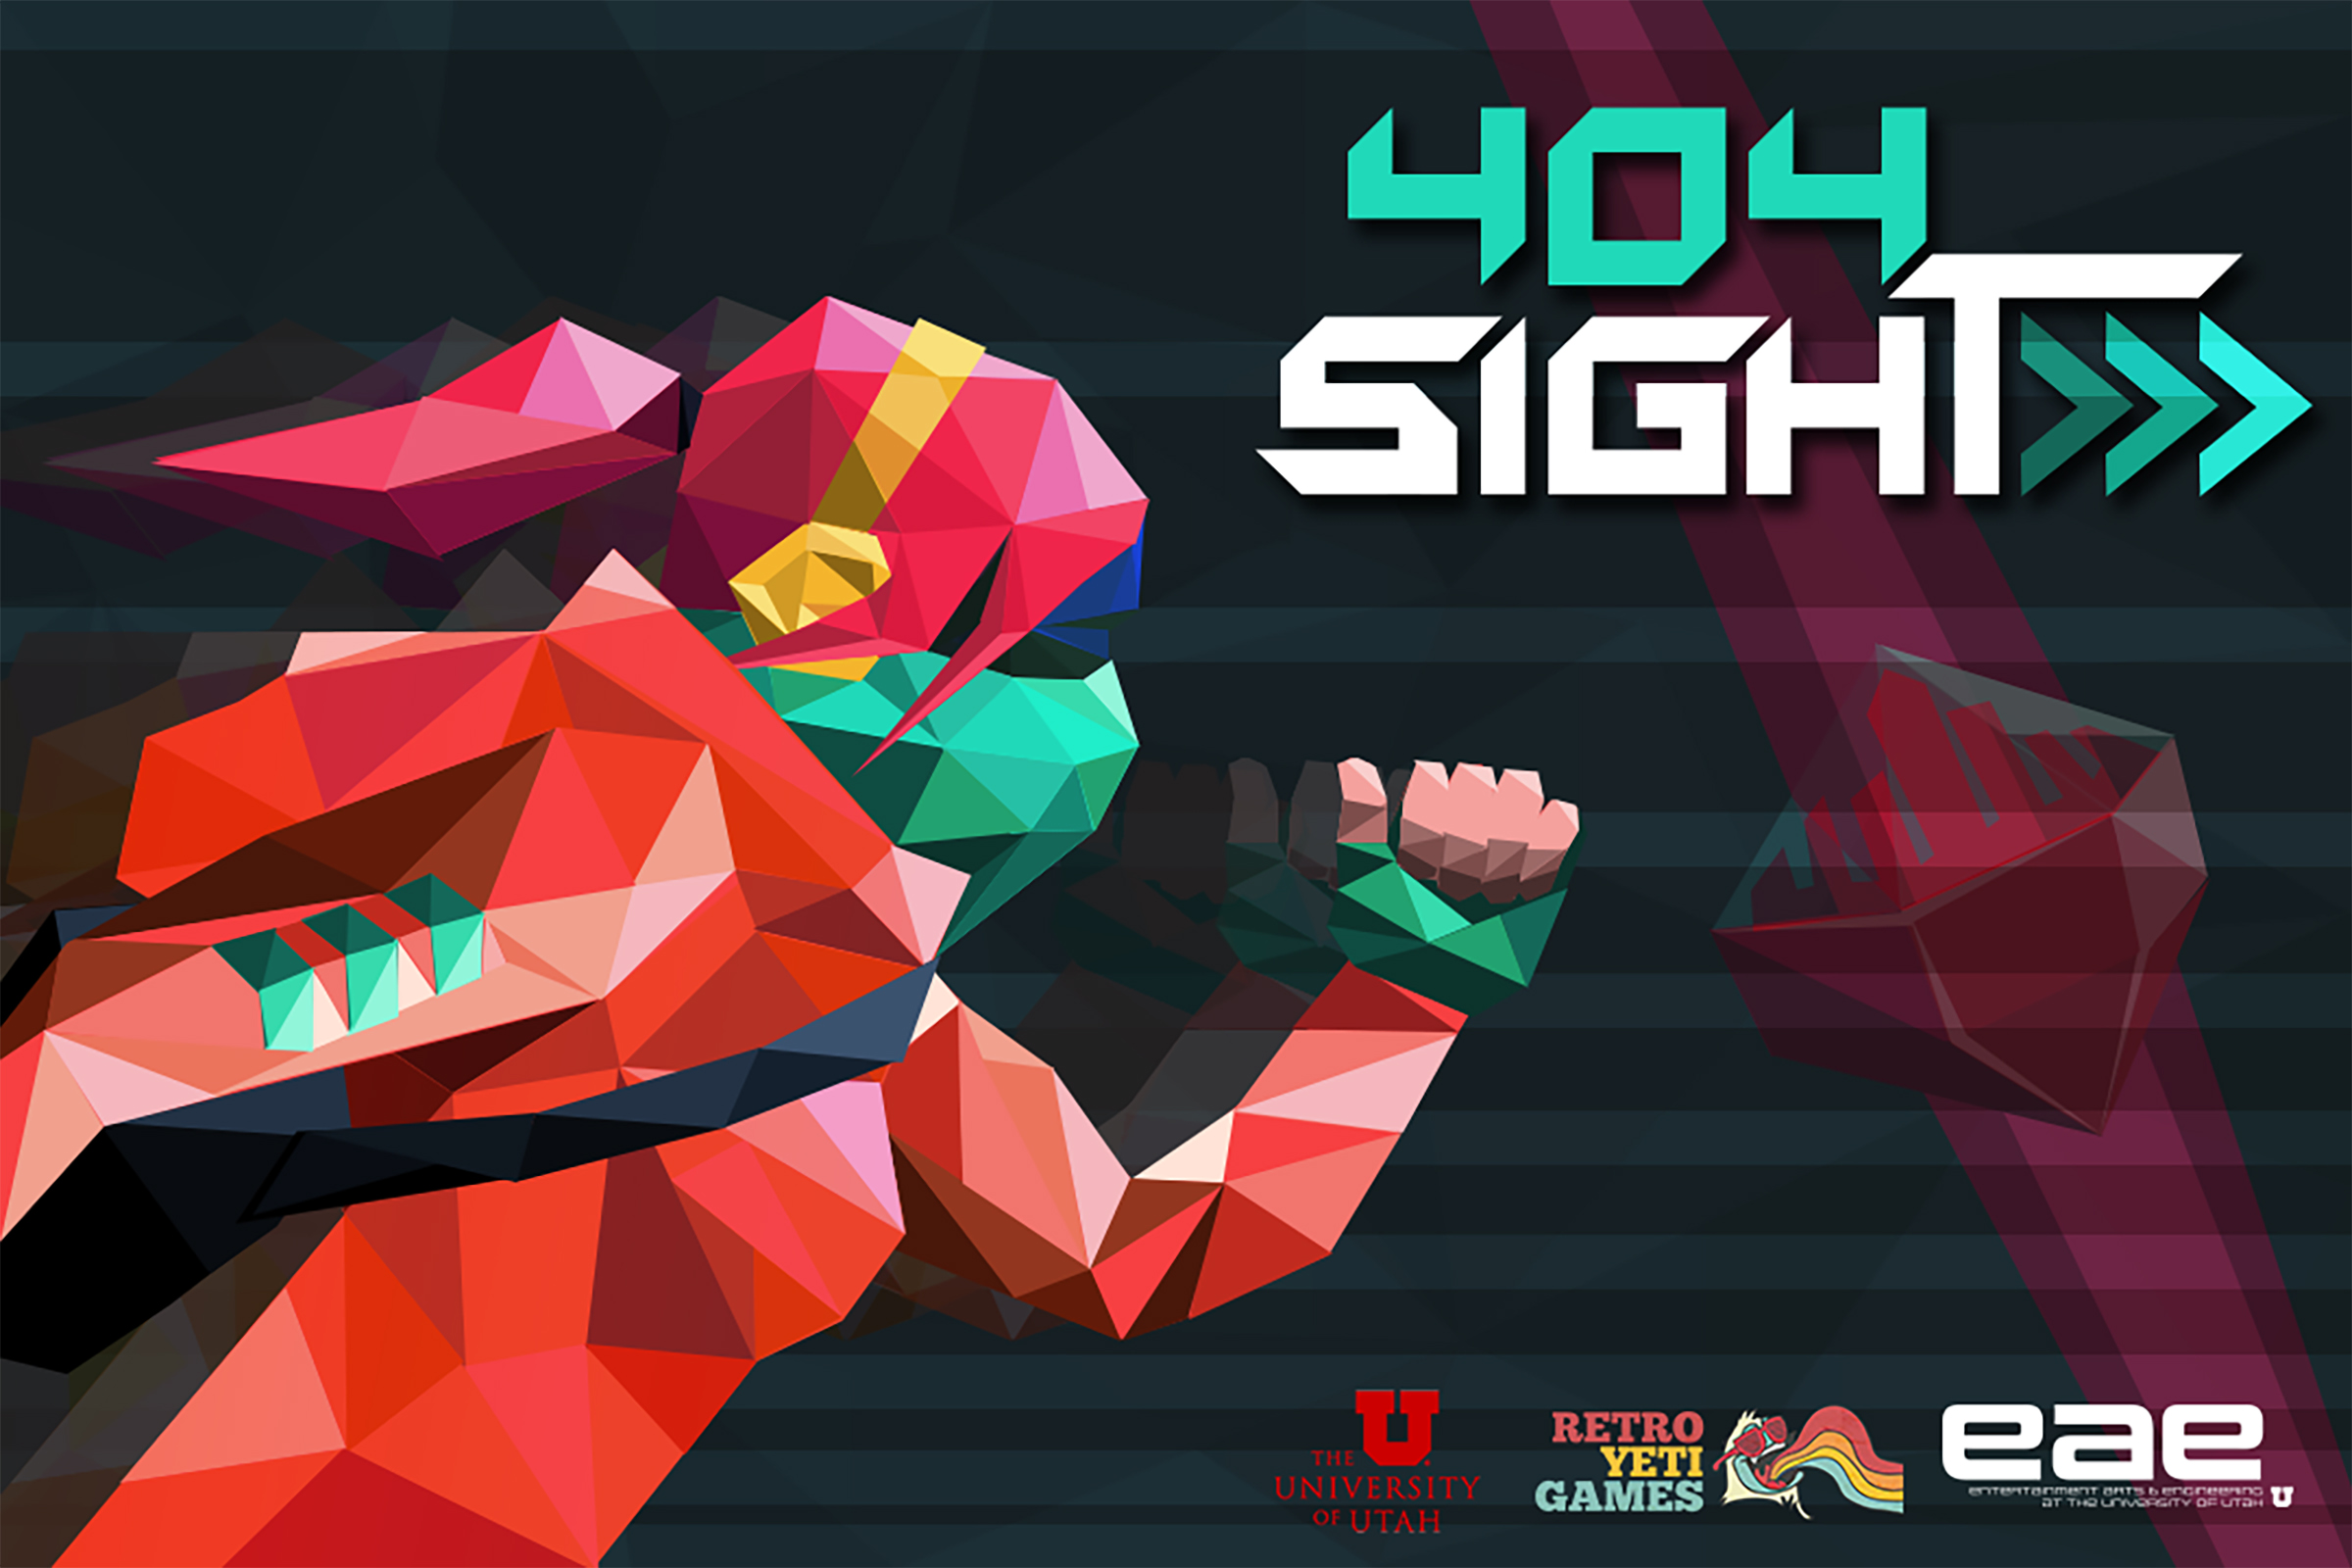 404Sight is available on STEAM for free